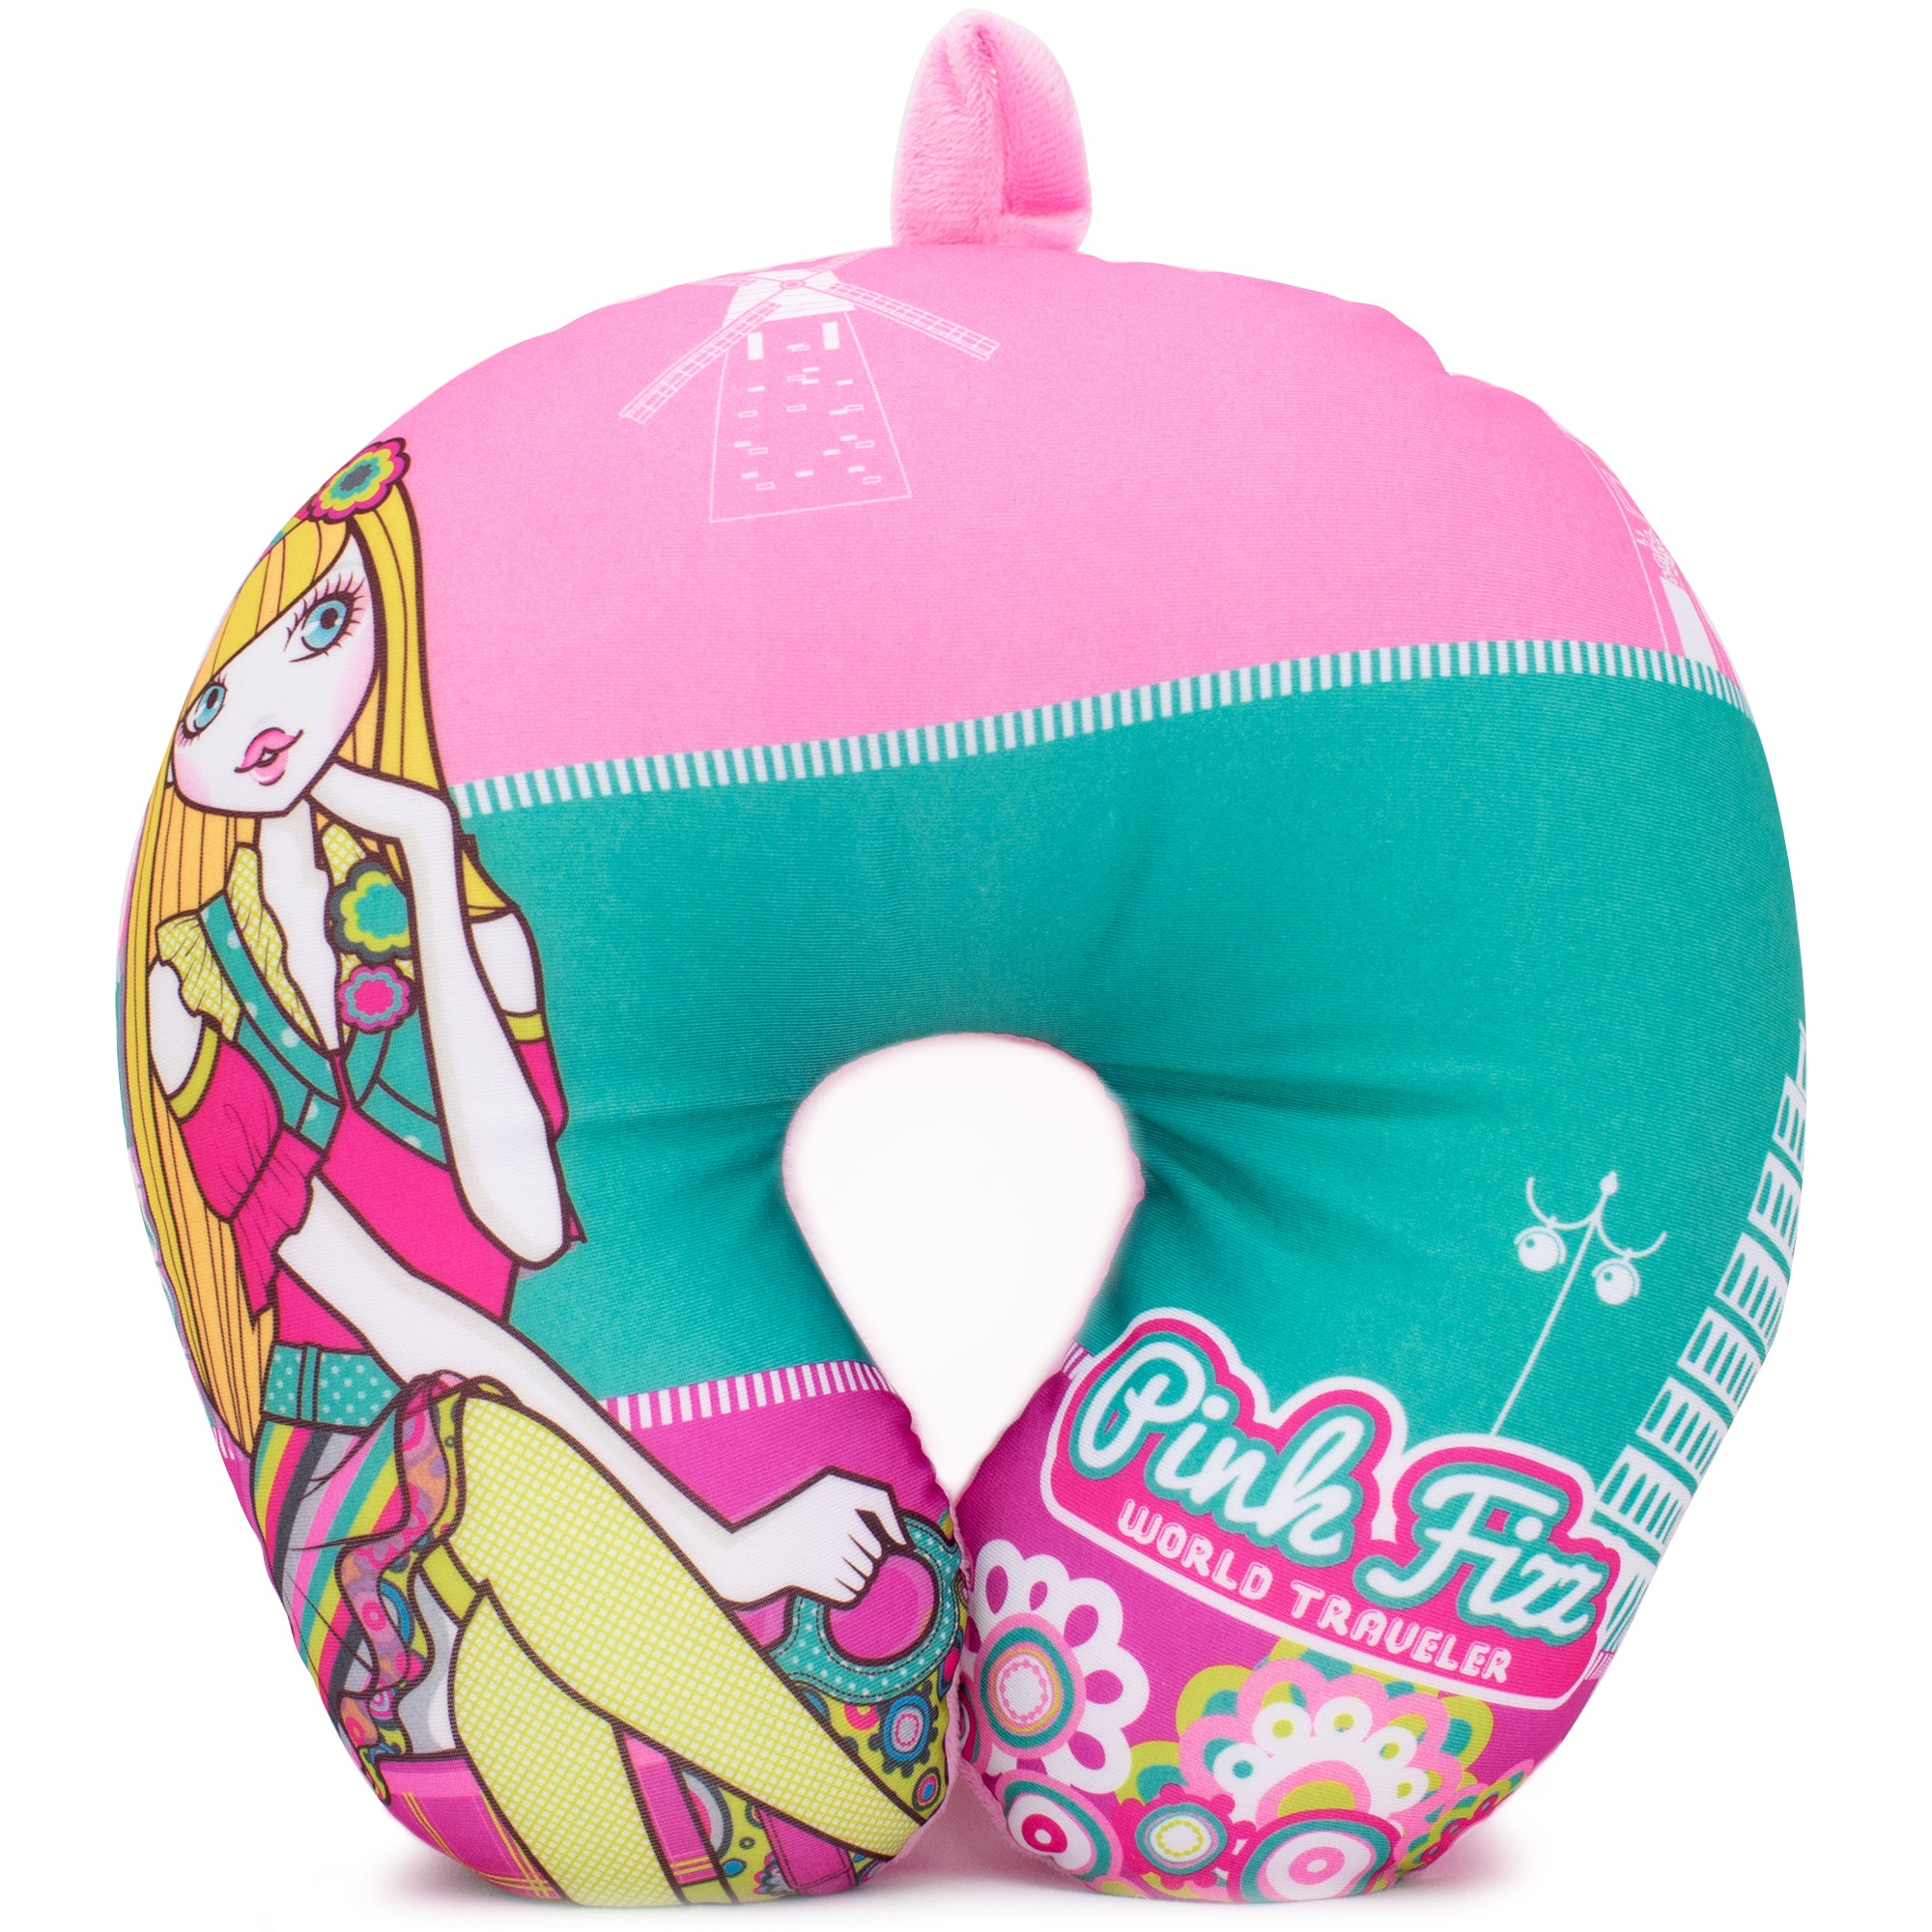 Microbeads Neck Pillow for Girls - Lulu - Travellty